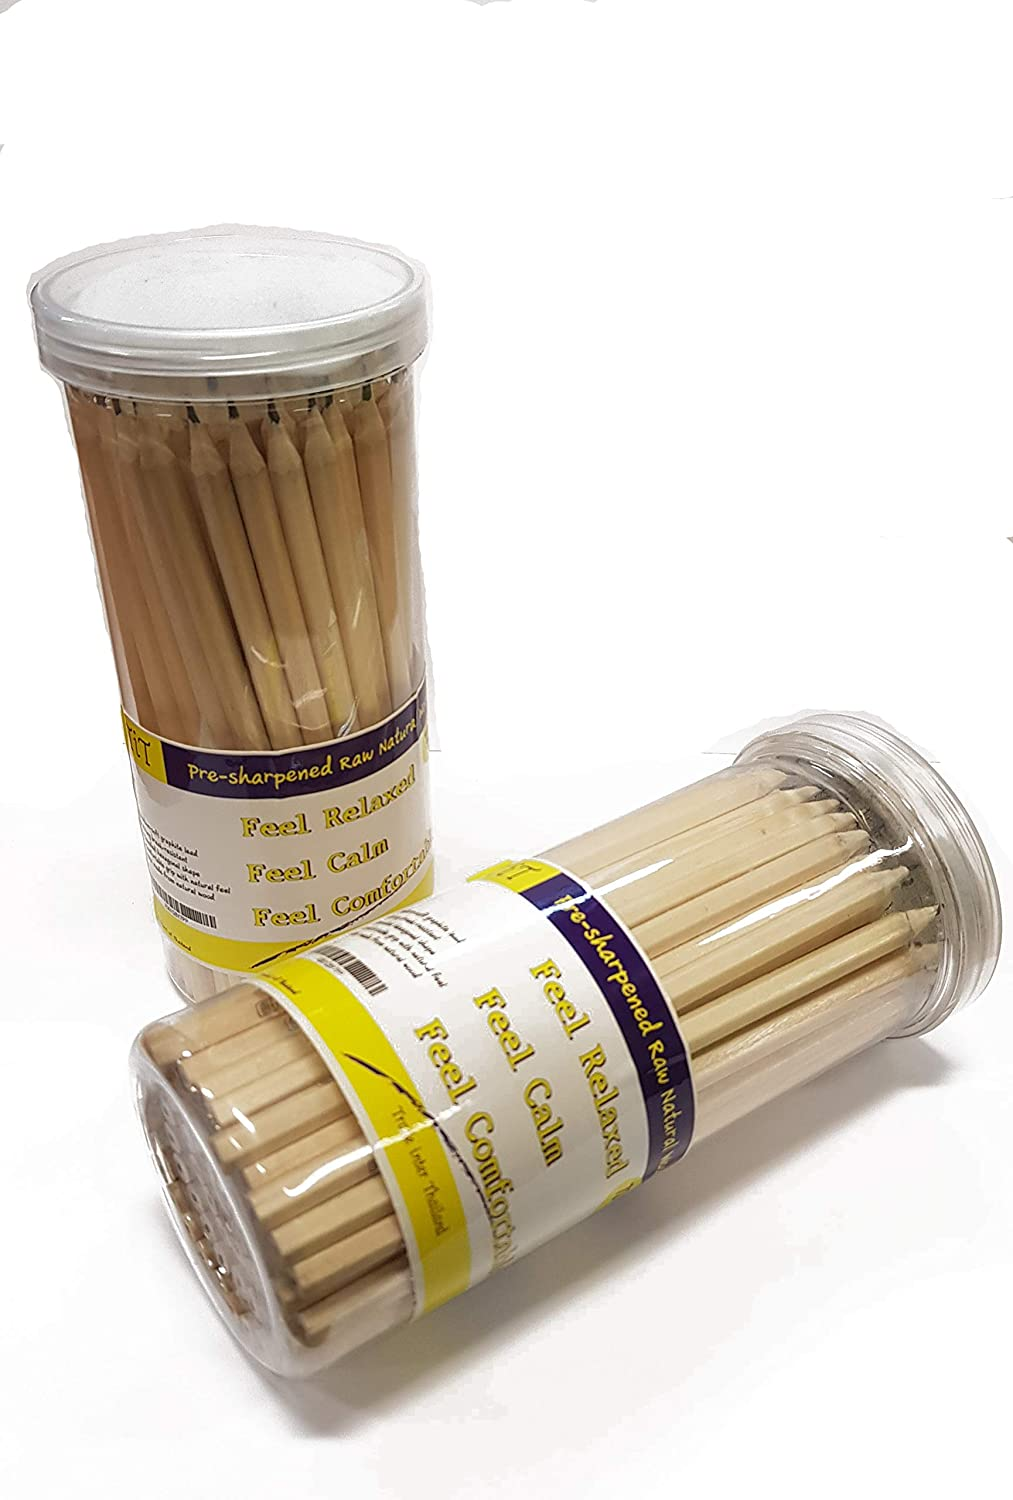 71b236e4b Amazon.com   Pre-sharpened Raw Natural Wood Pencils 72 PCs in Box   TiT    Office Products